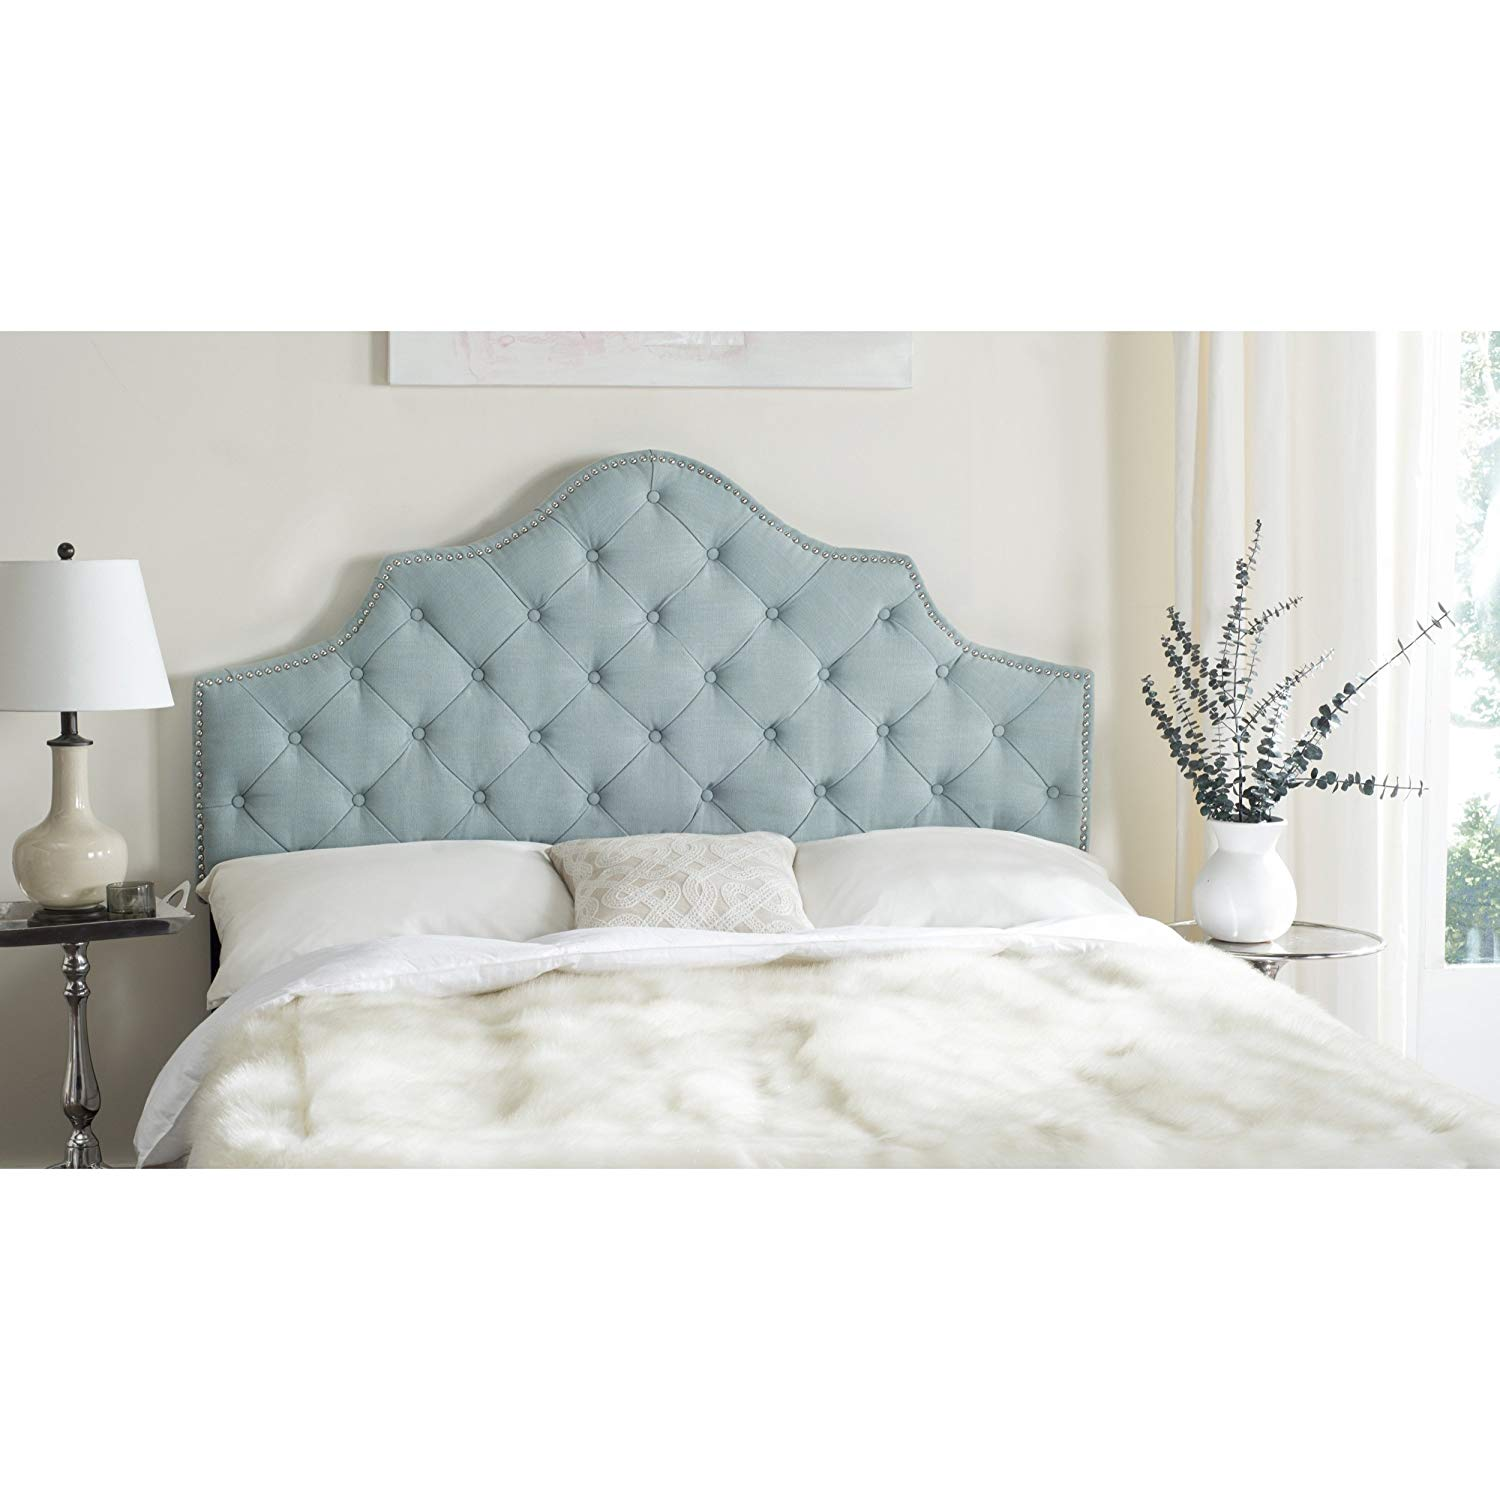 amazon.com - safavieh arebelle sky blue upholstered tufted headboard - AARNGCW